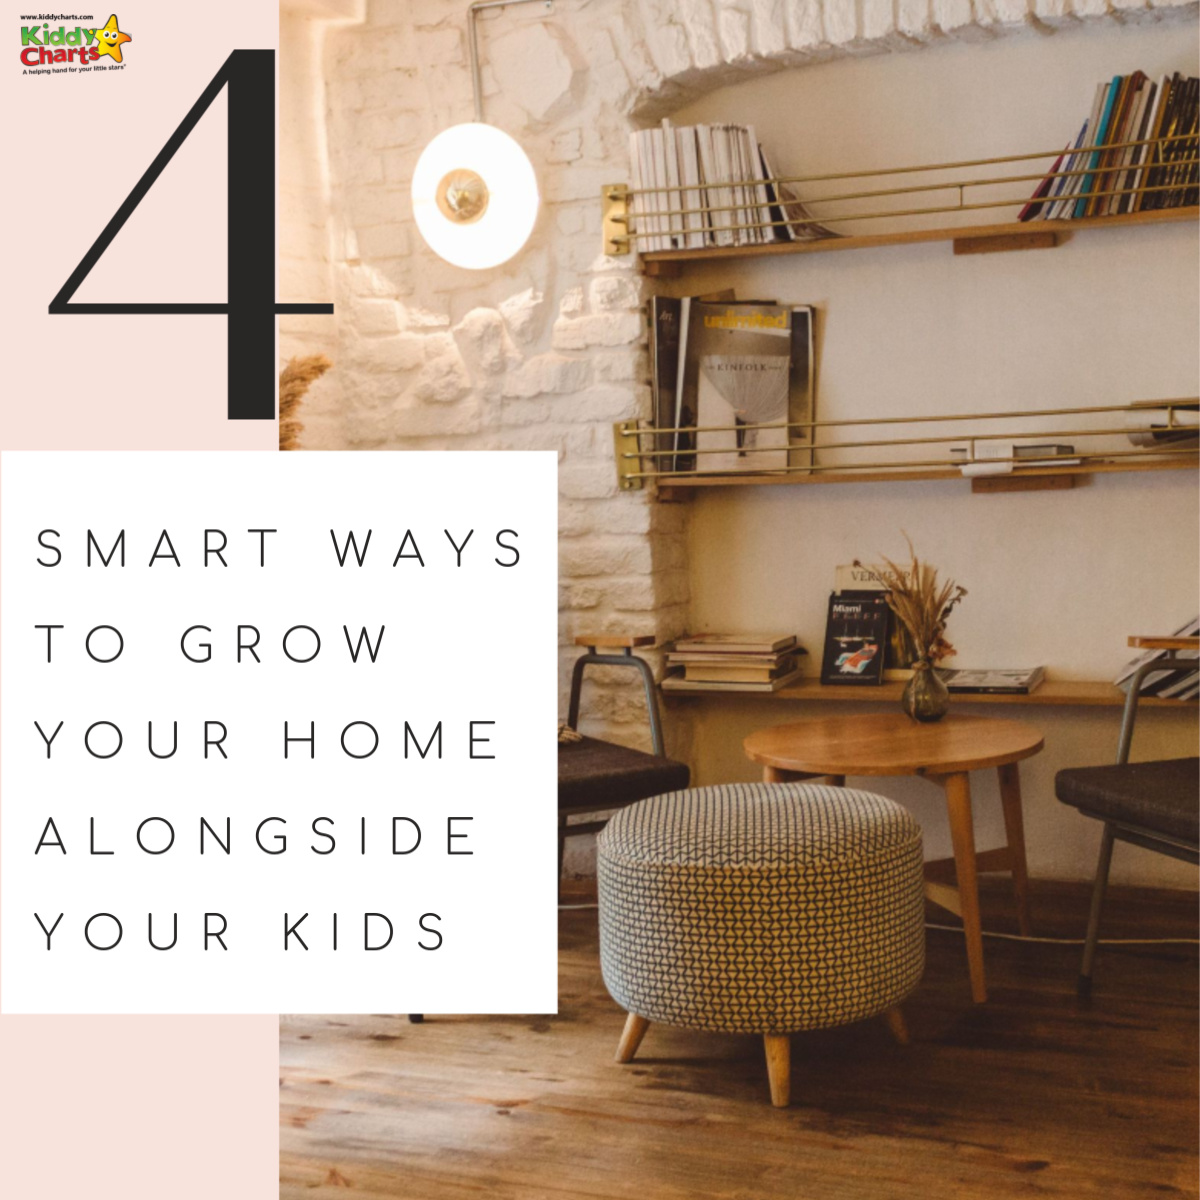 Do you need more space as the kids grow? We've got some great ideas to help your home grow with your kids without breaking the bank! #home #interiordesign #familyhomes #familylife #livingspaces #livingrooms